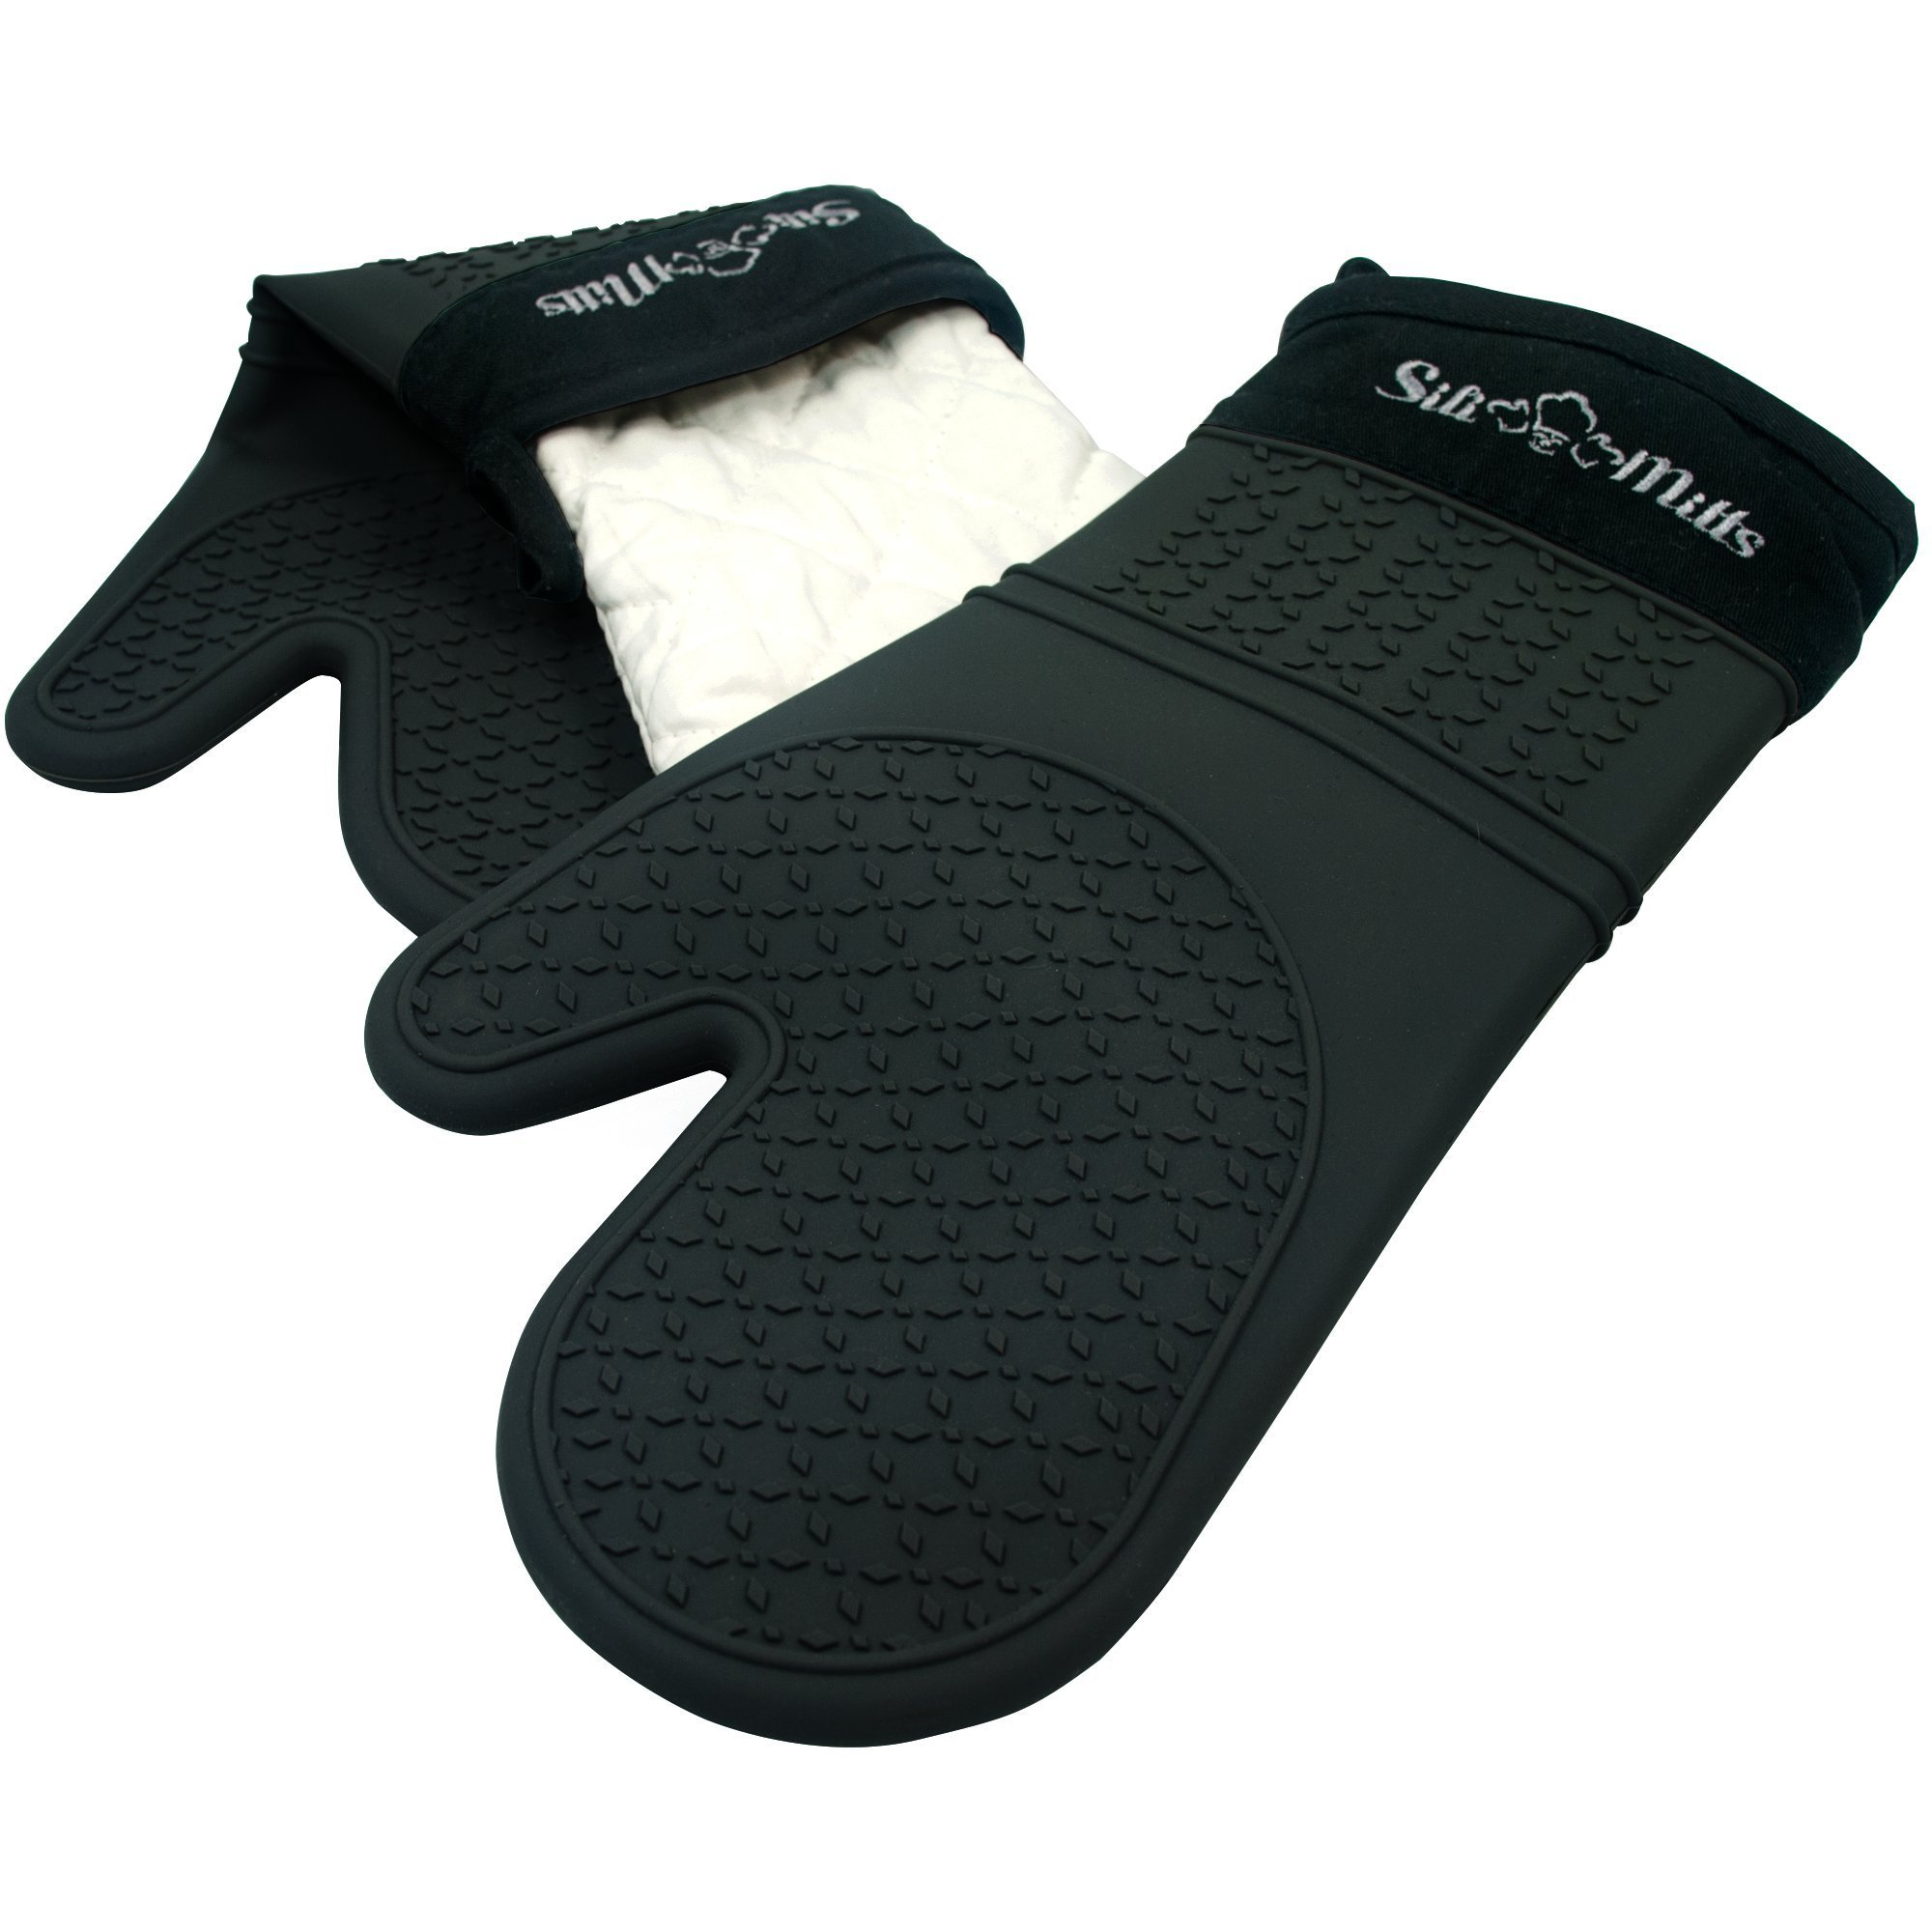 Black Silicone Oven Hot Mitts - 1 Pair of Extra Long Professional Heat Resistant Pot Holder & Baking Gloves - Food Safe, BPA Free FDA Approved With Soft Inner Lining by Frux Home and Yard (Image #3)